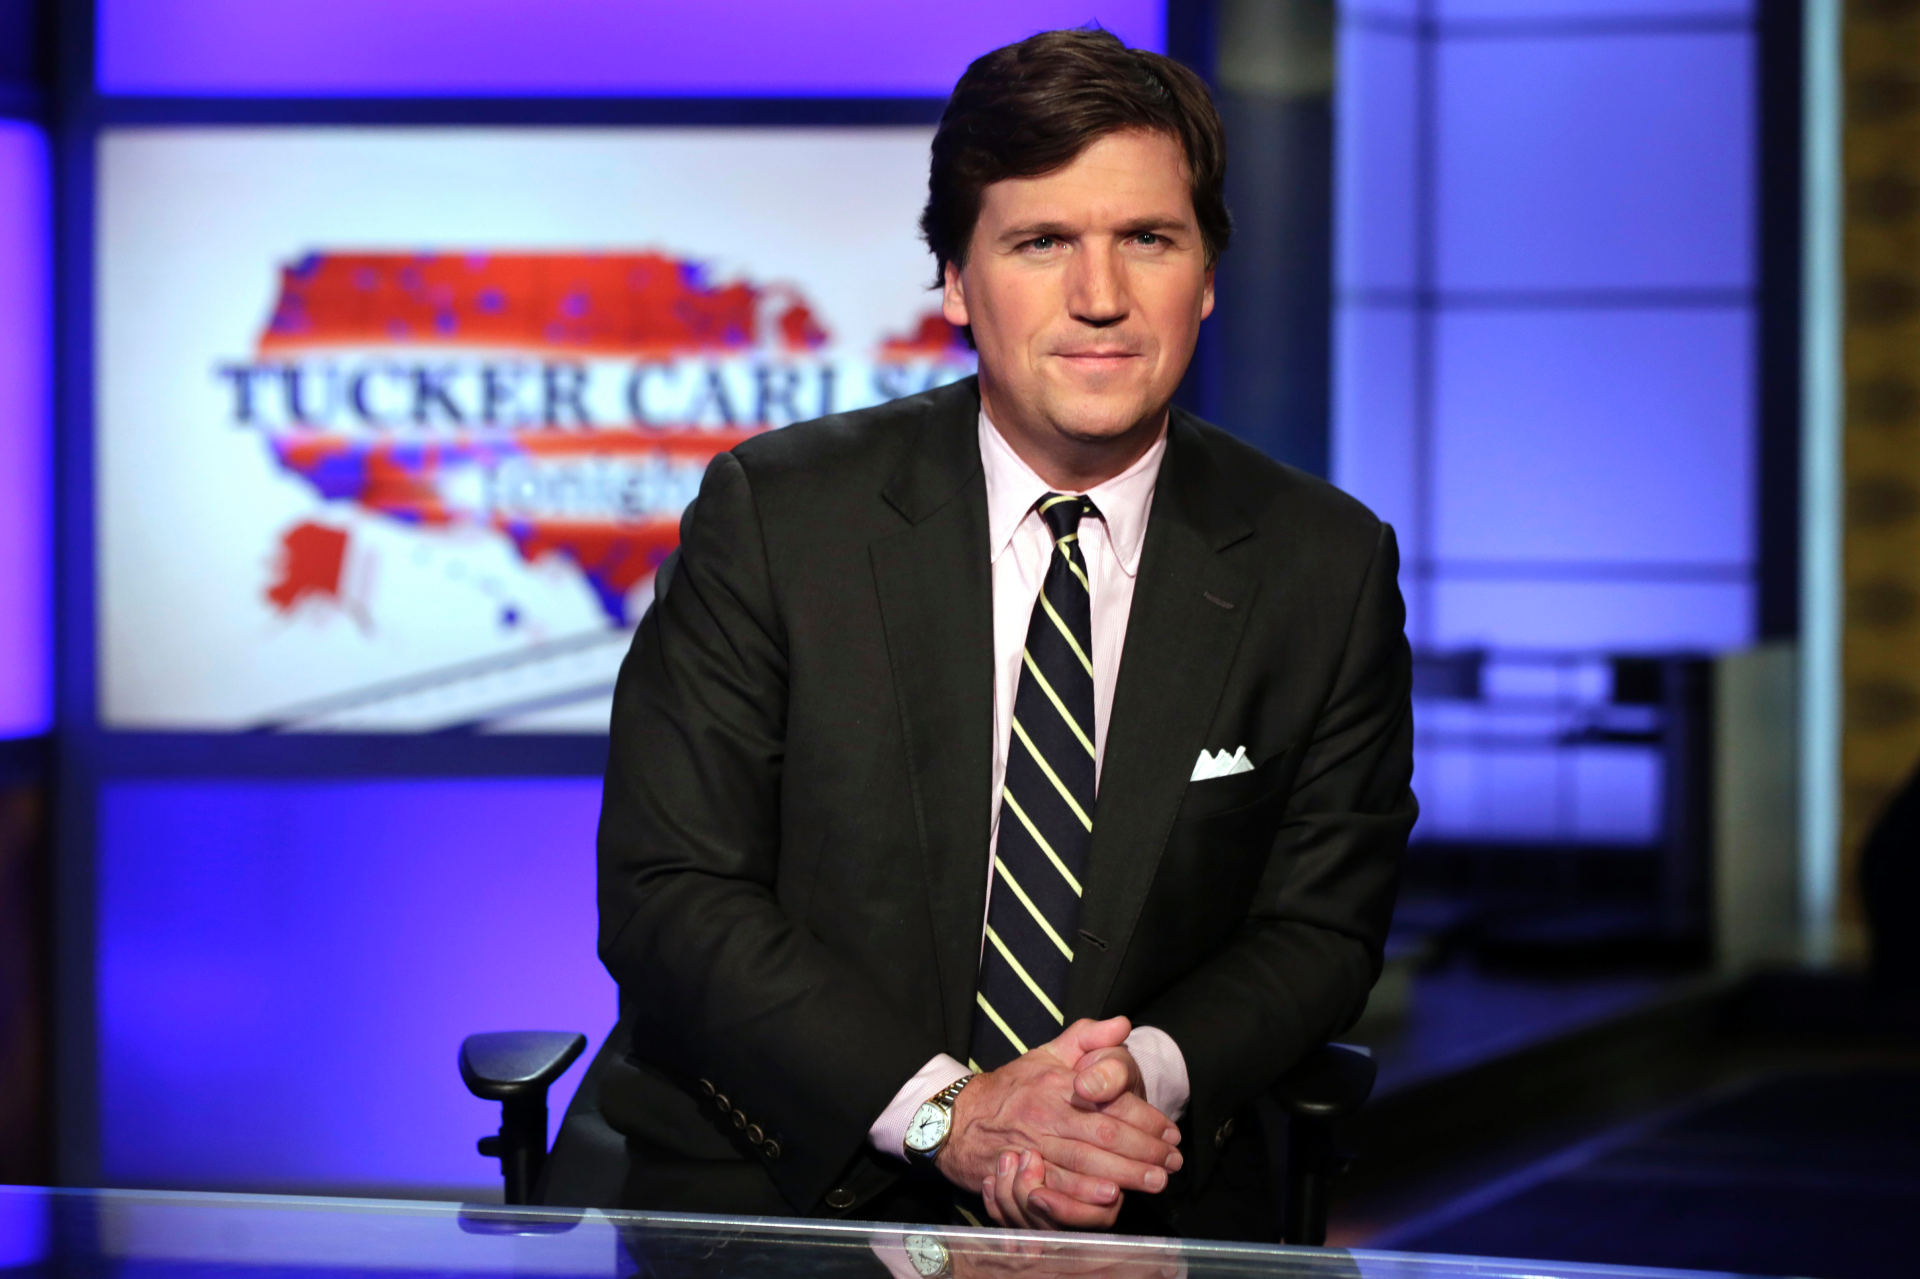 Tucker Carlson, under fire for past radio comments, blames the Left